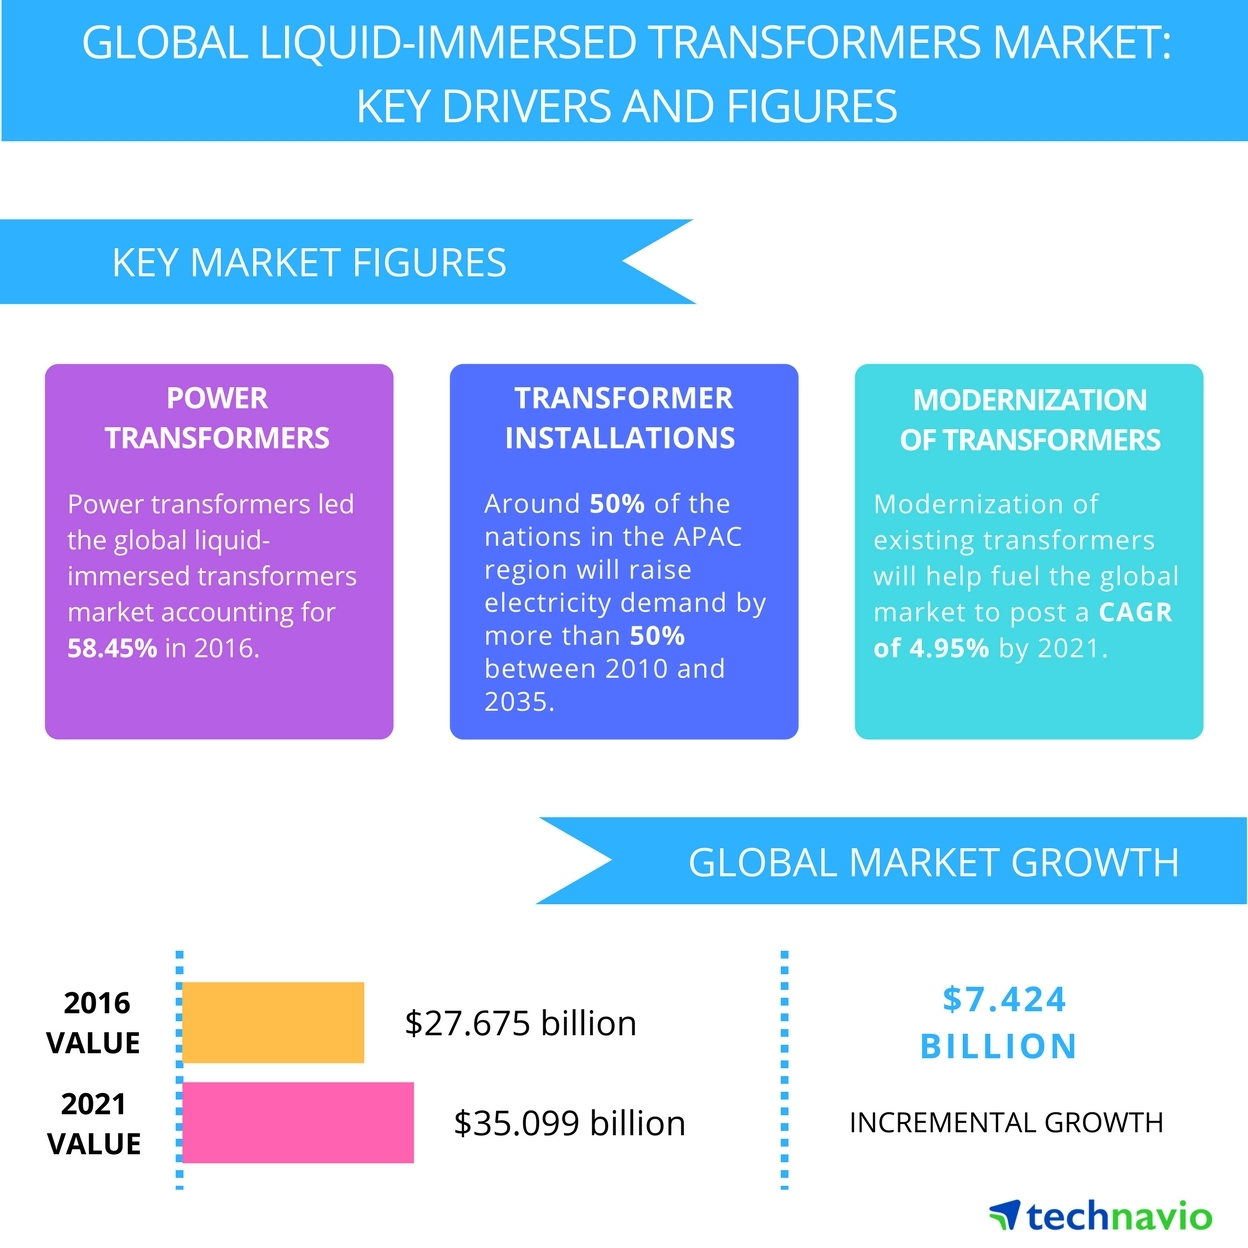 Top 3 Emerging Trends Impacting the Global Liquid-immersed